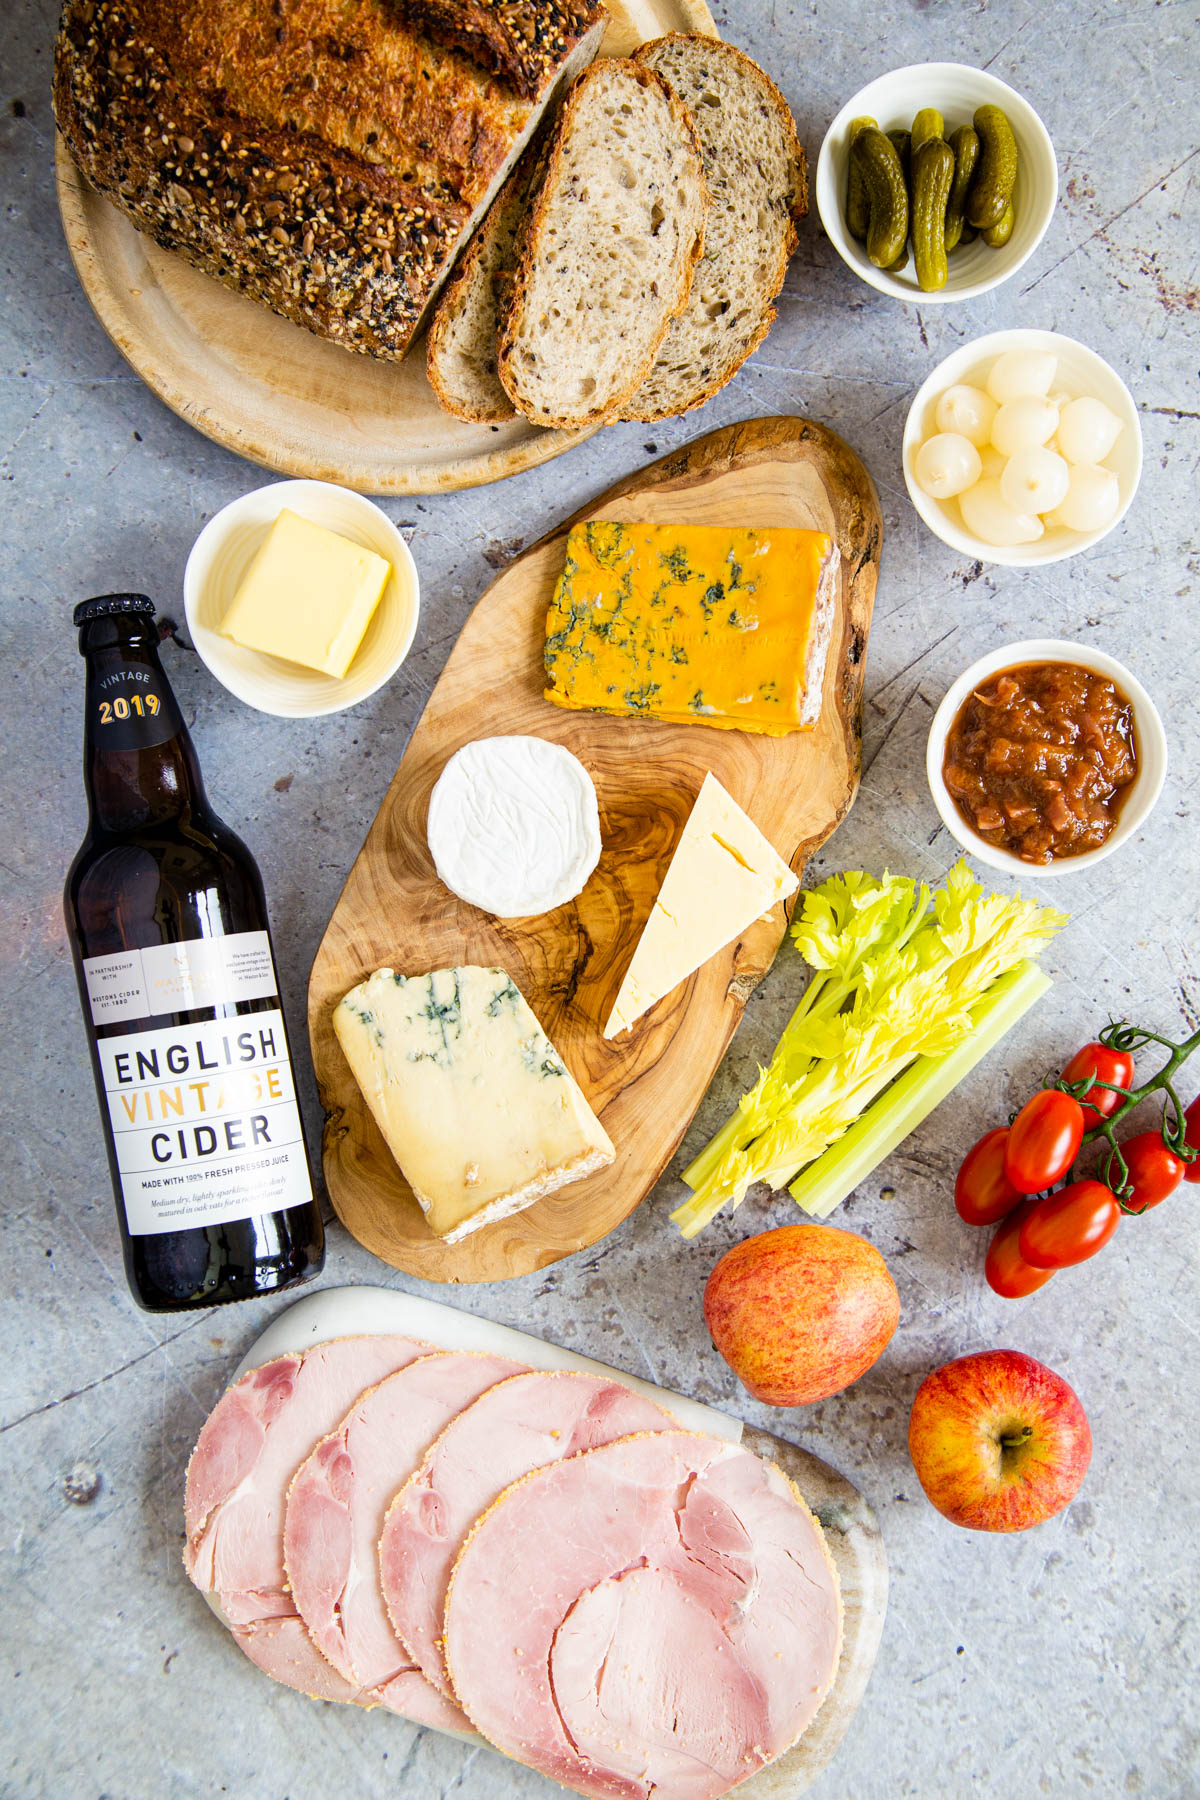 Ploughmans lunch - a selection of cheeses on a board and some sliced ham on a marble platter. A bottle of cider lies next ot the cheese. Sliced bread in the top of the picture.